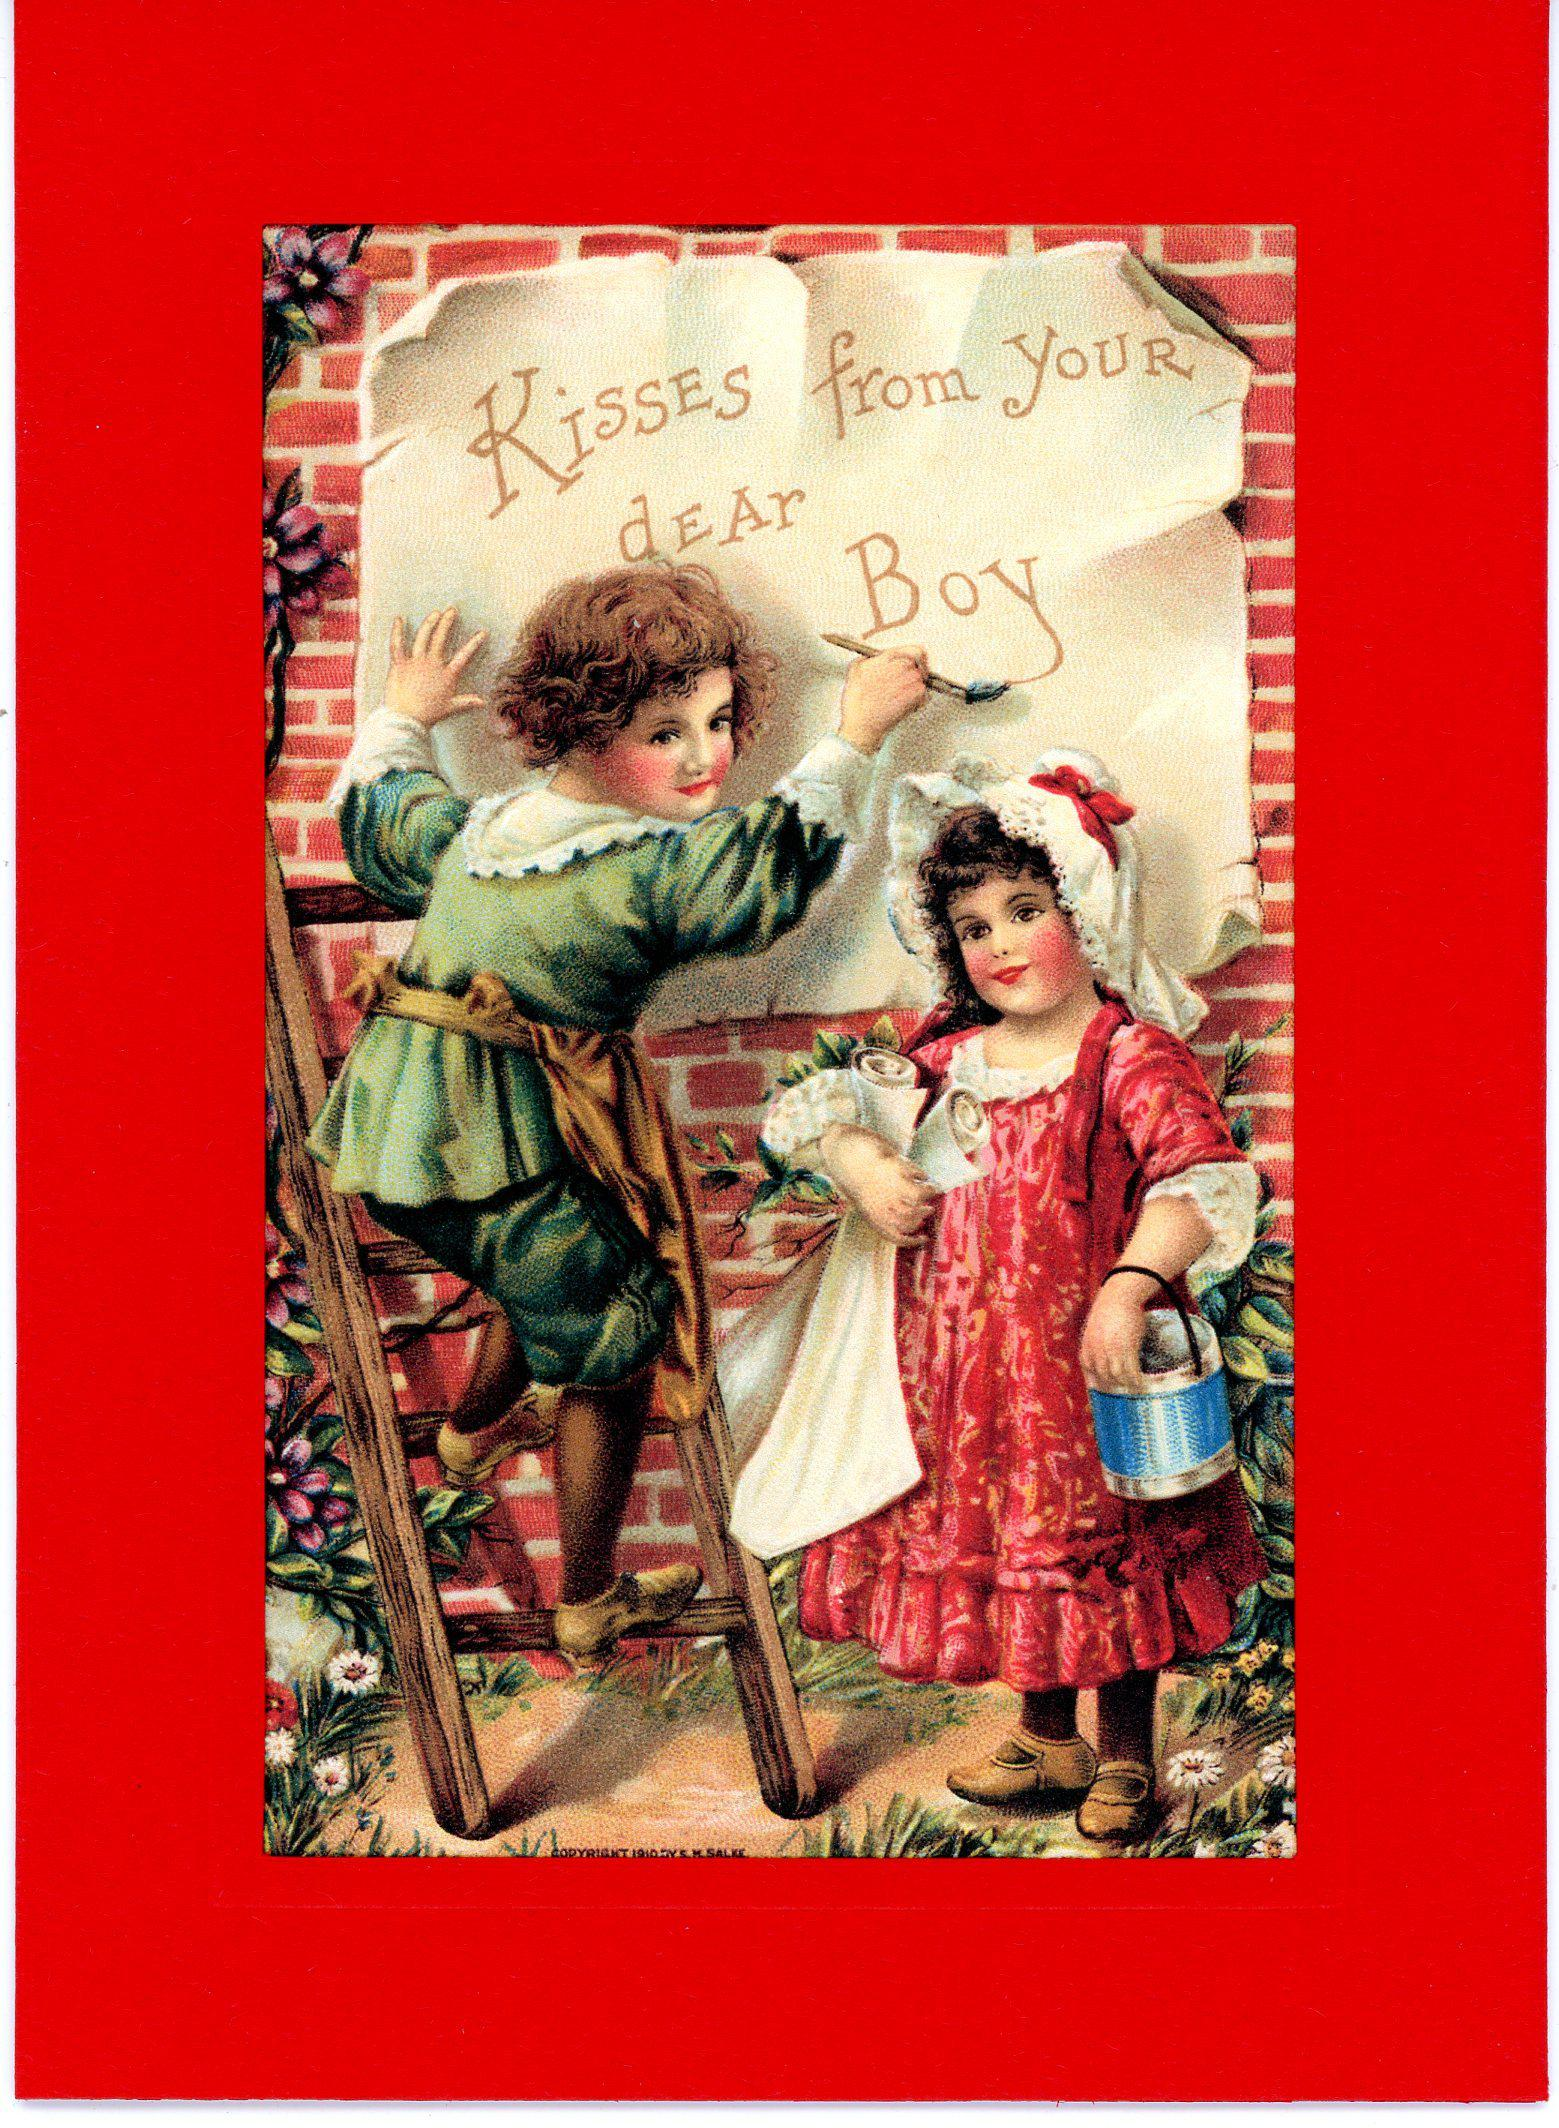 Kisses from Your Dear Boy-Greetings from the Past-Plymouth Cards